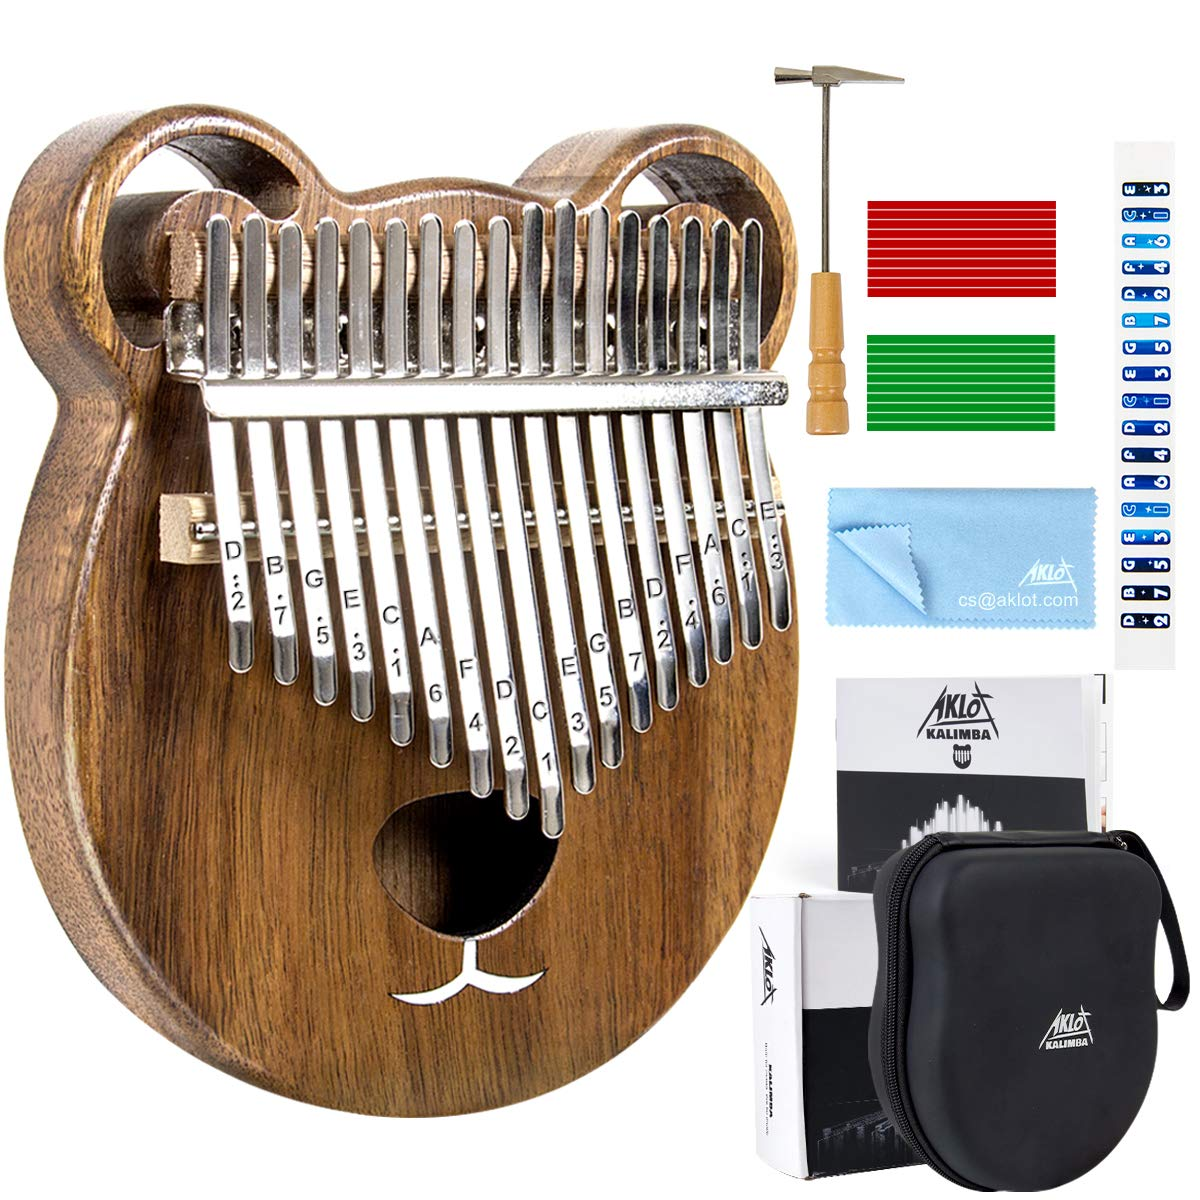 Kalimba 17 Keys Thumb Piano Solid Wood Finger Piano Start Kits African Instrument with Protective Case Tuning Hammer Study Booklet Cleaning Cloth From AKLOT by AKLOT